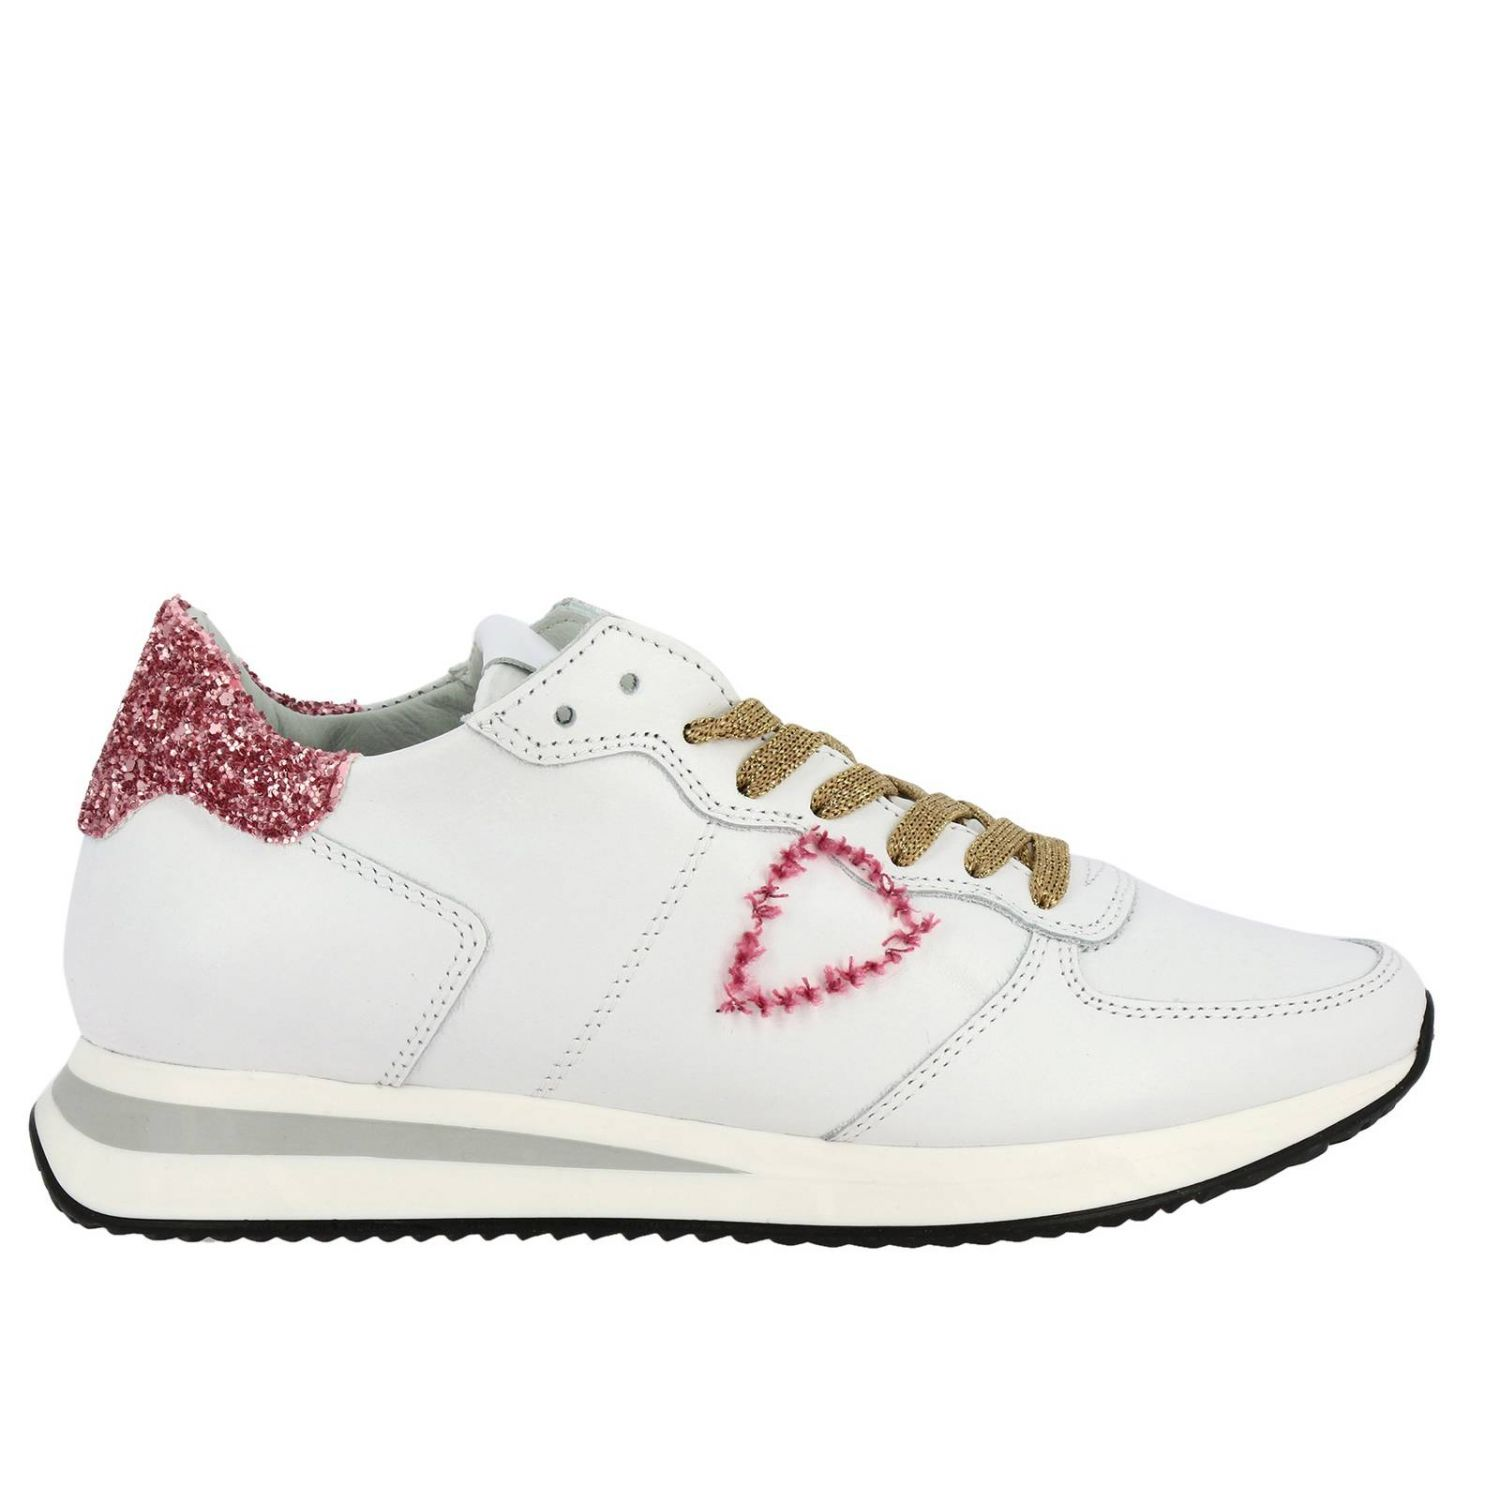 Shoes women Philippe Model white 1